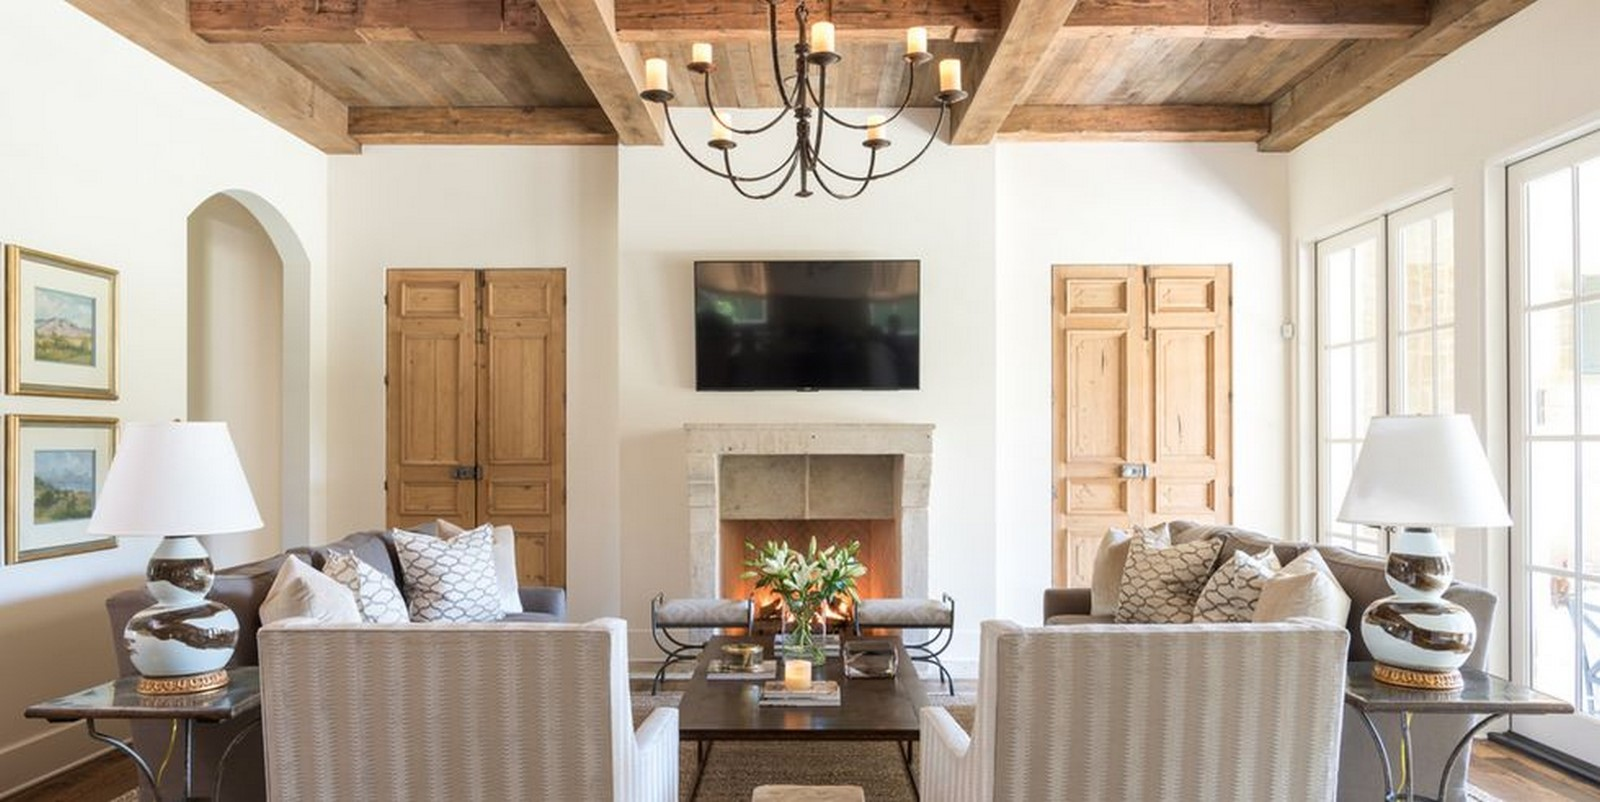 30 Examples of Rustic interiors for living rooms - Sheet5